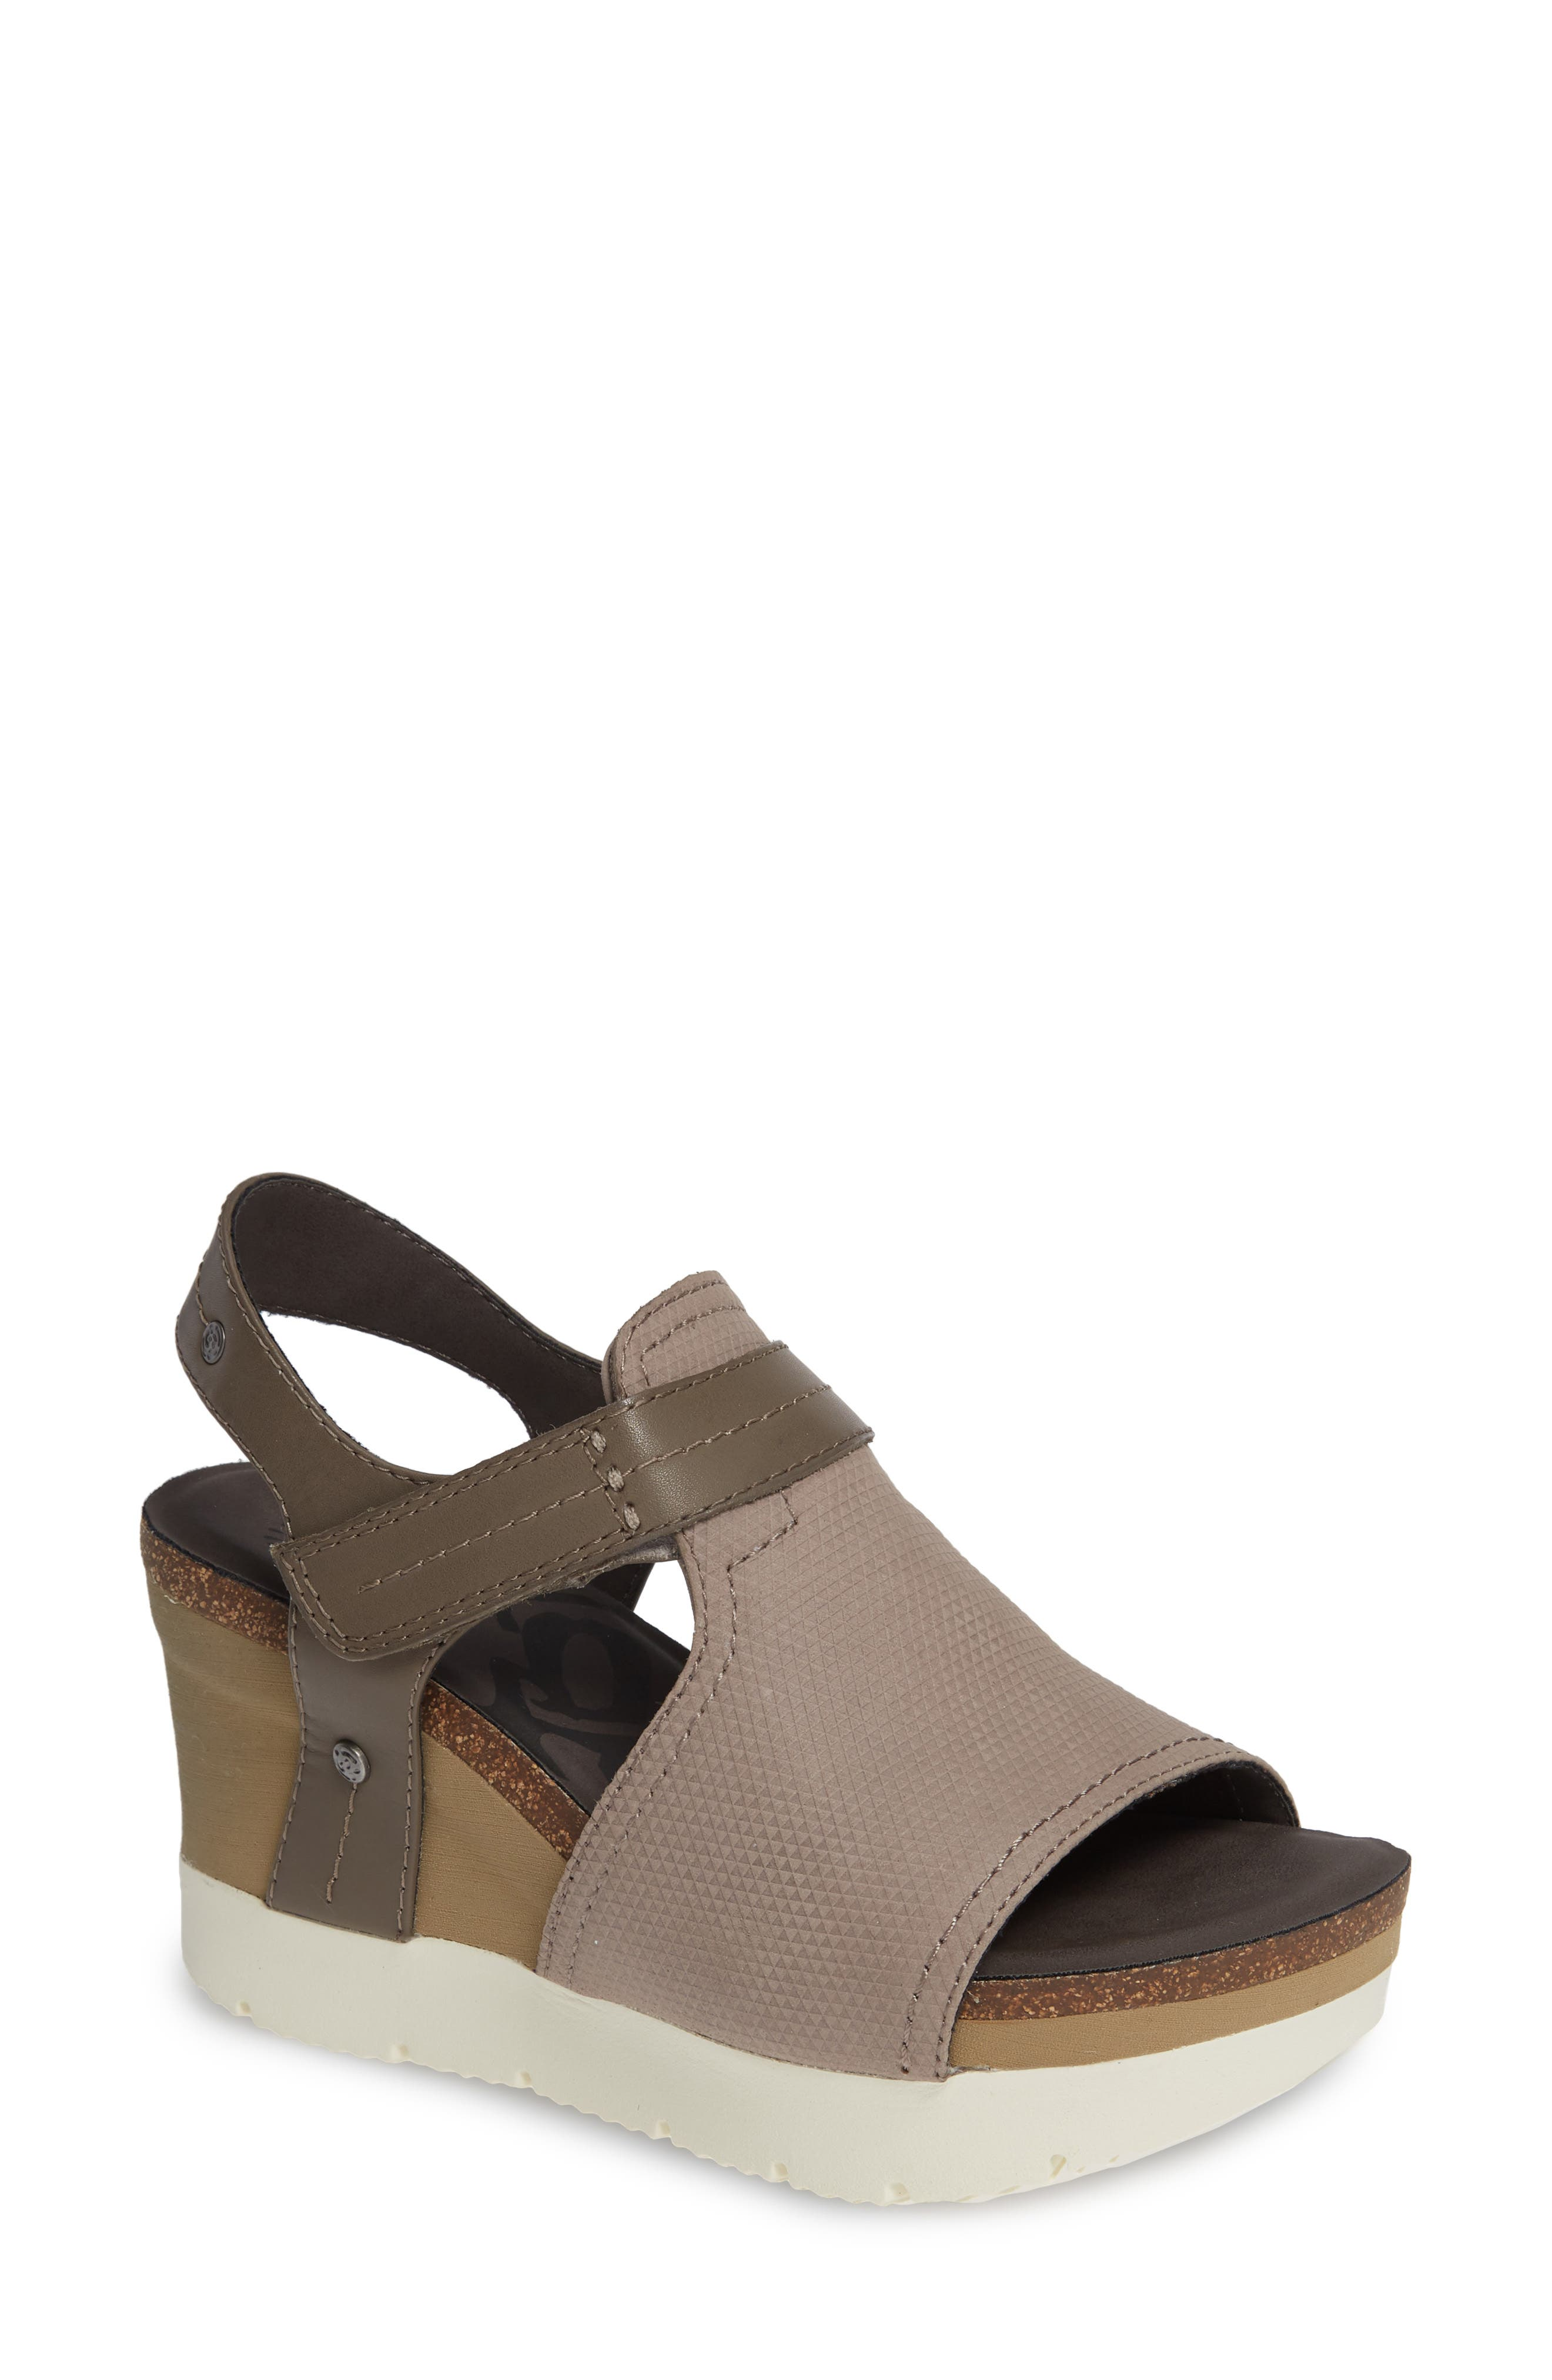 Waypoint Wedge Sandal,                             Main thumbnail 1, color,                             CACAO LEATHER